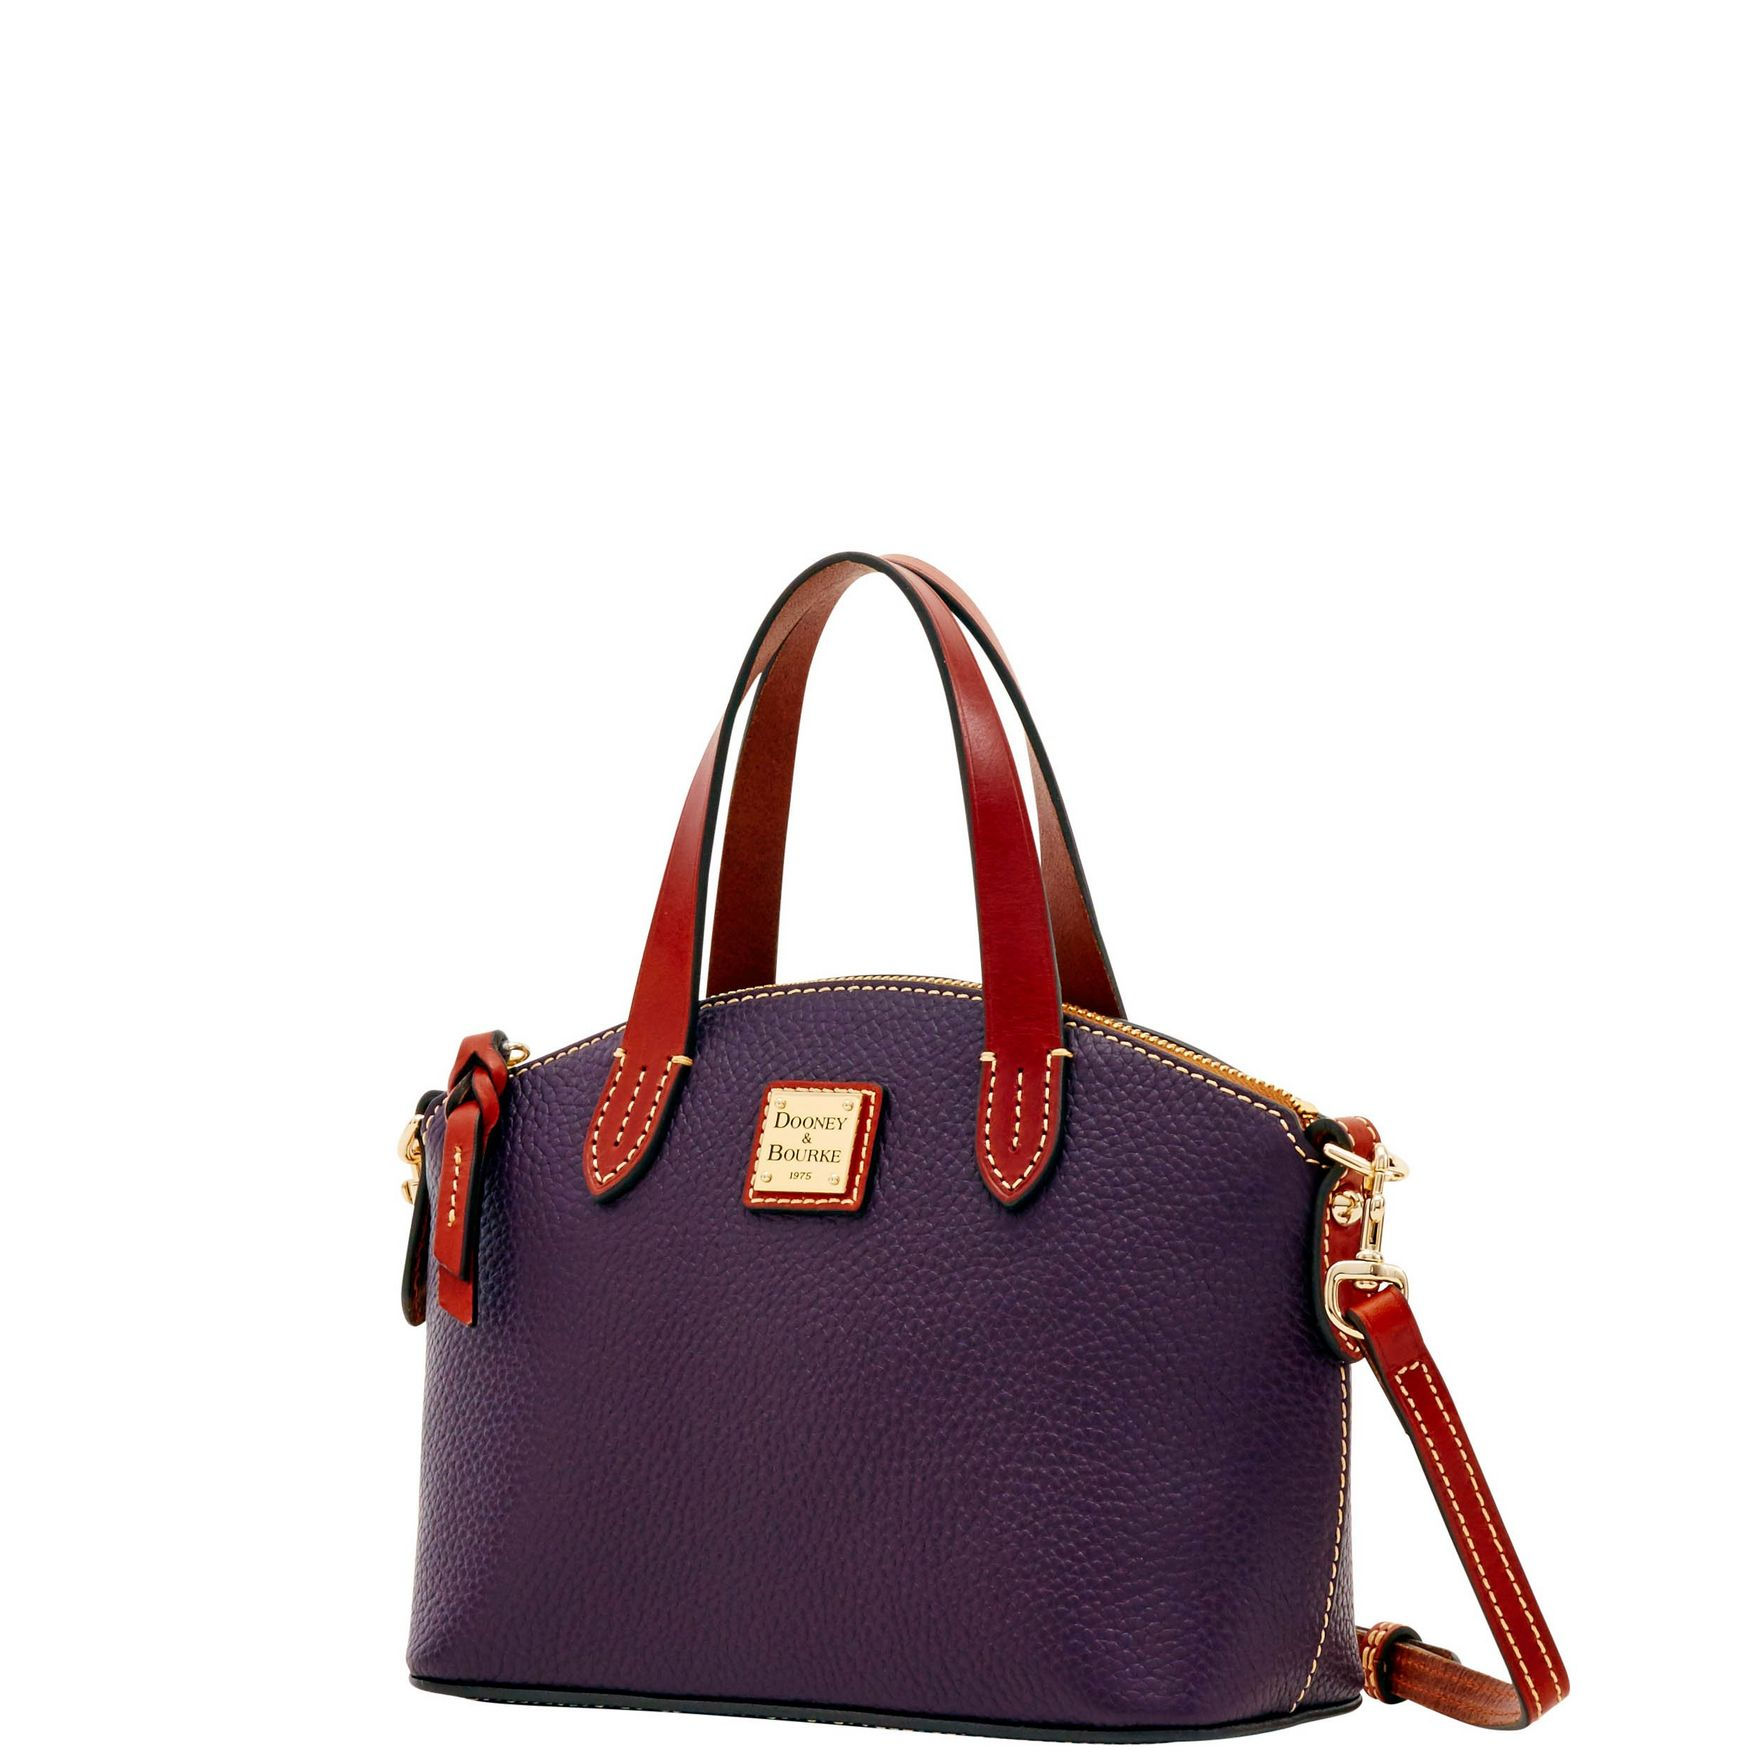 Dooney-amp-Bourke-Pebble-Grain-Ruby-Top-Handle-Bag thumbnail 53